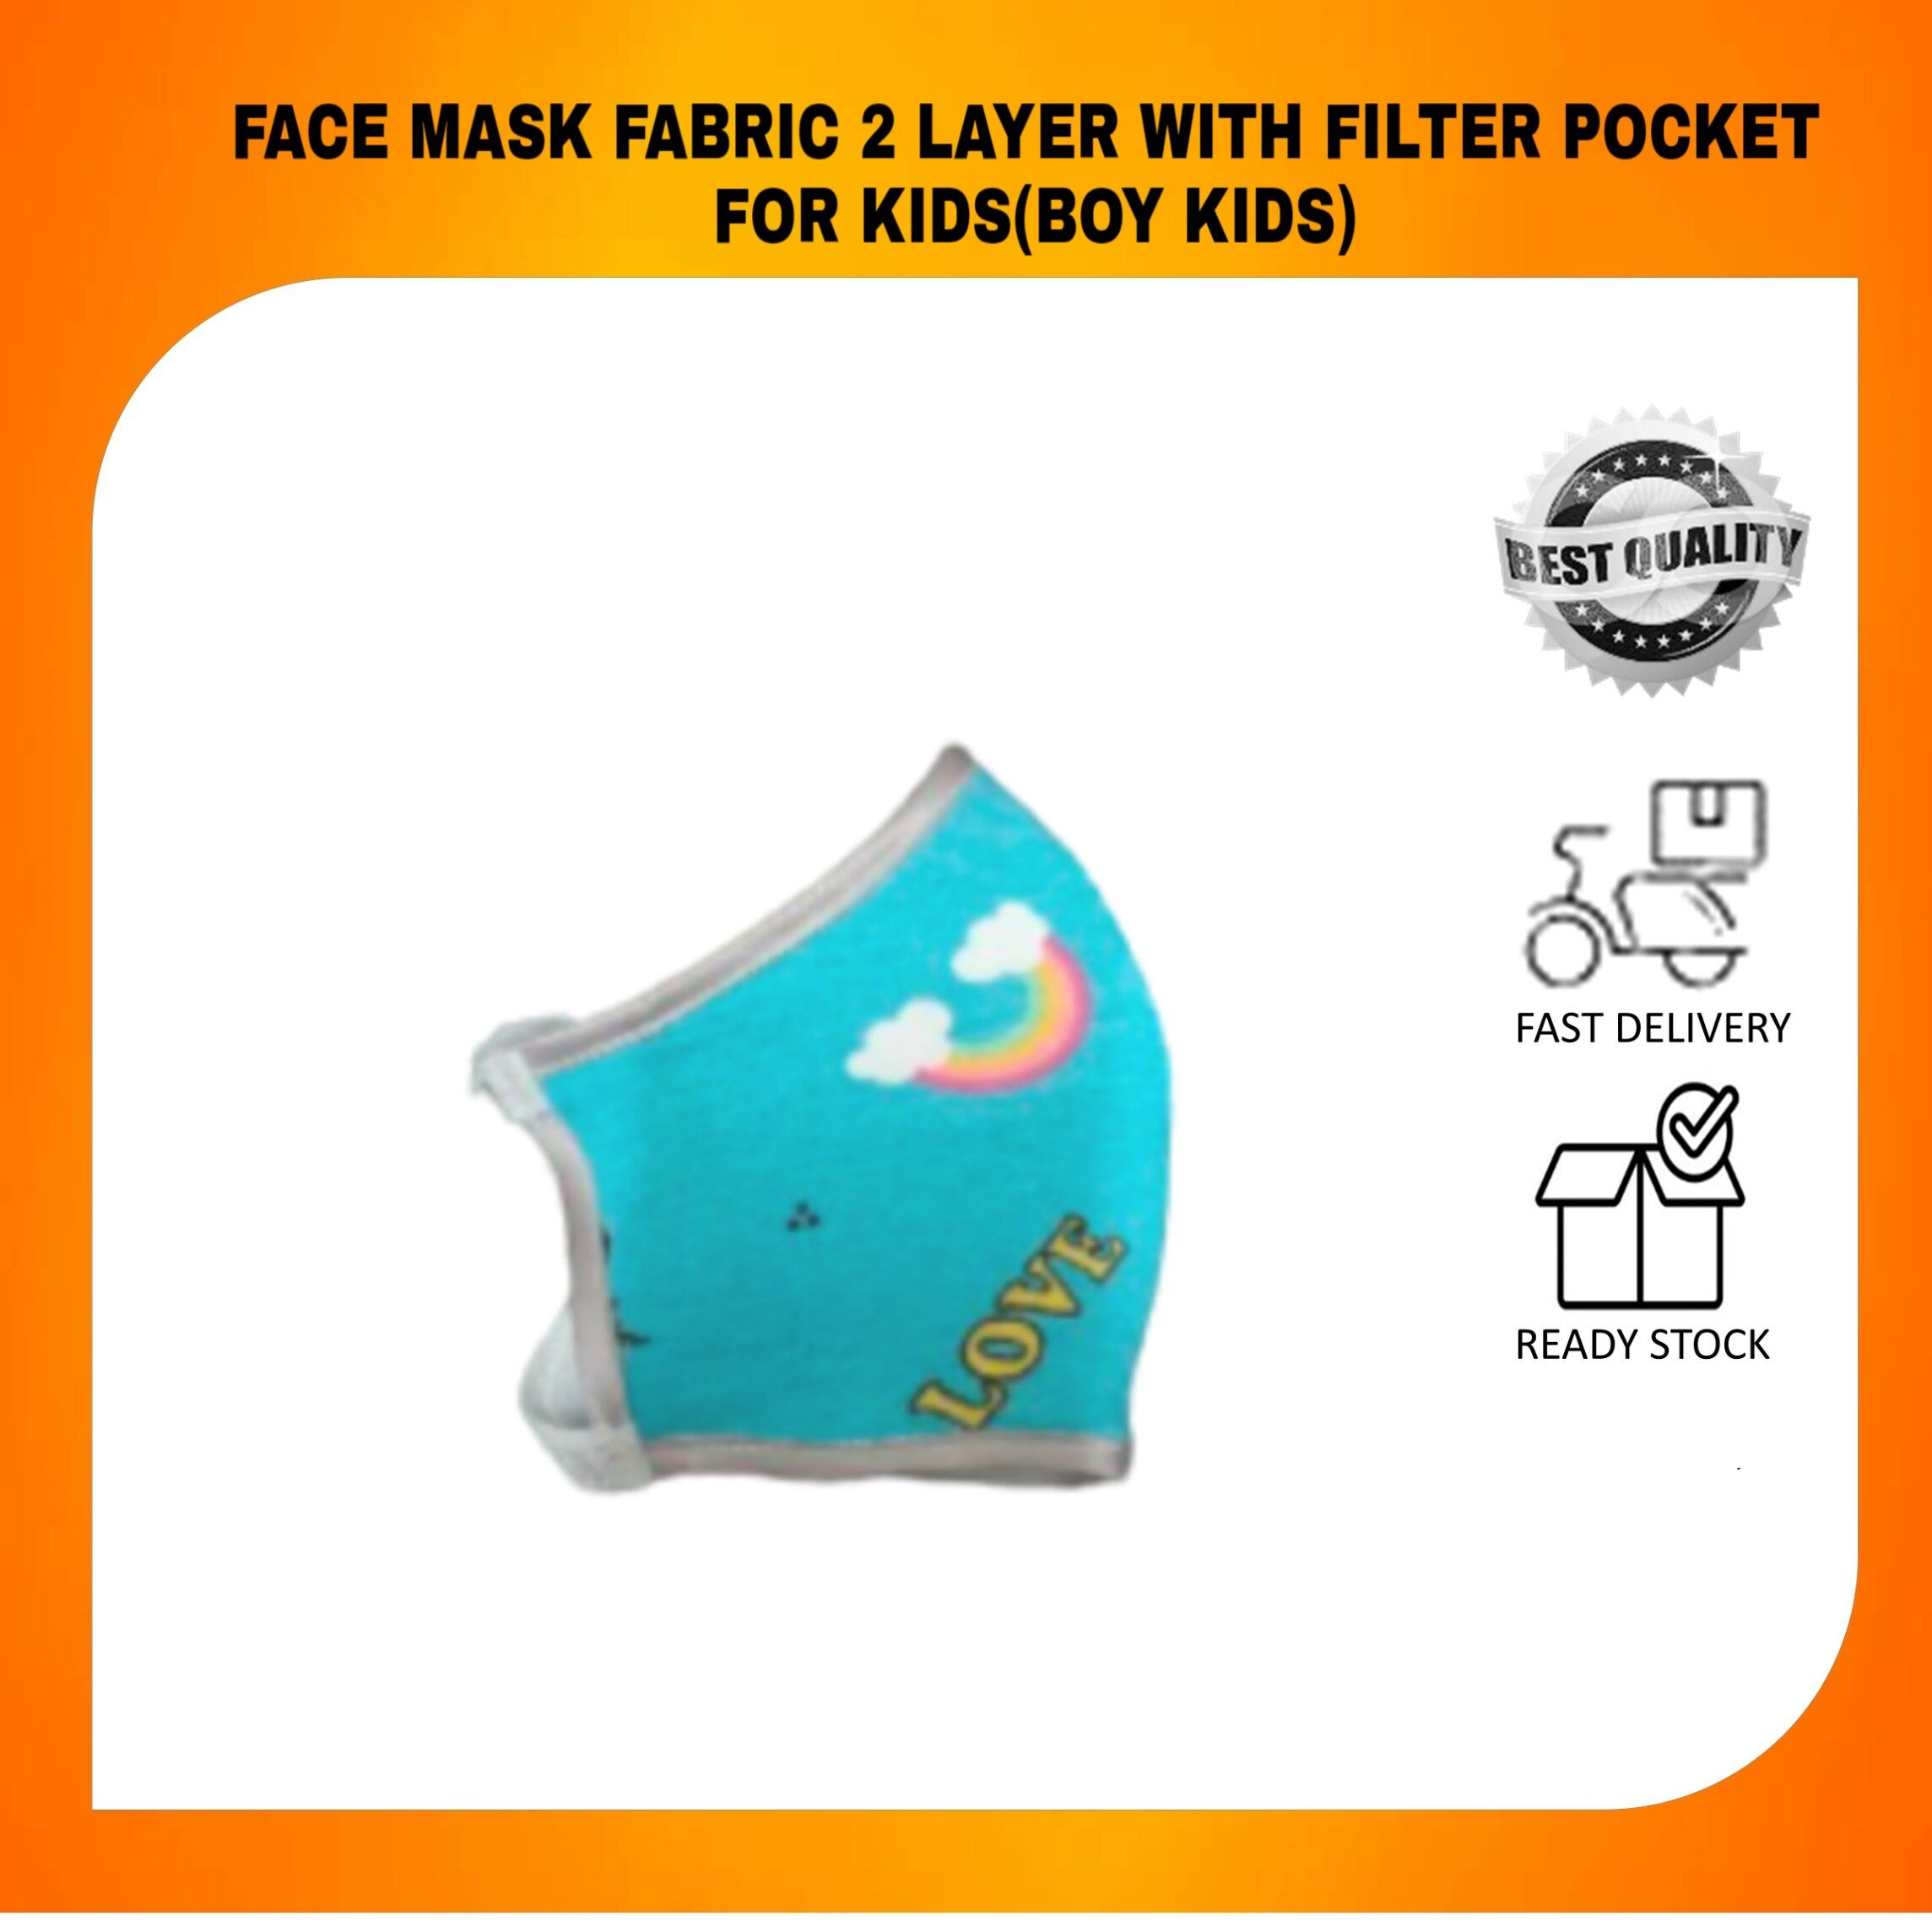 HOT FABRIC TRENDING MASK 2 LAYER WITH FILTER POCKET FOR KIDS Boys